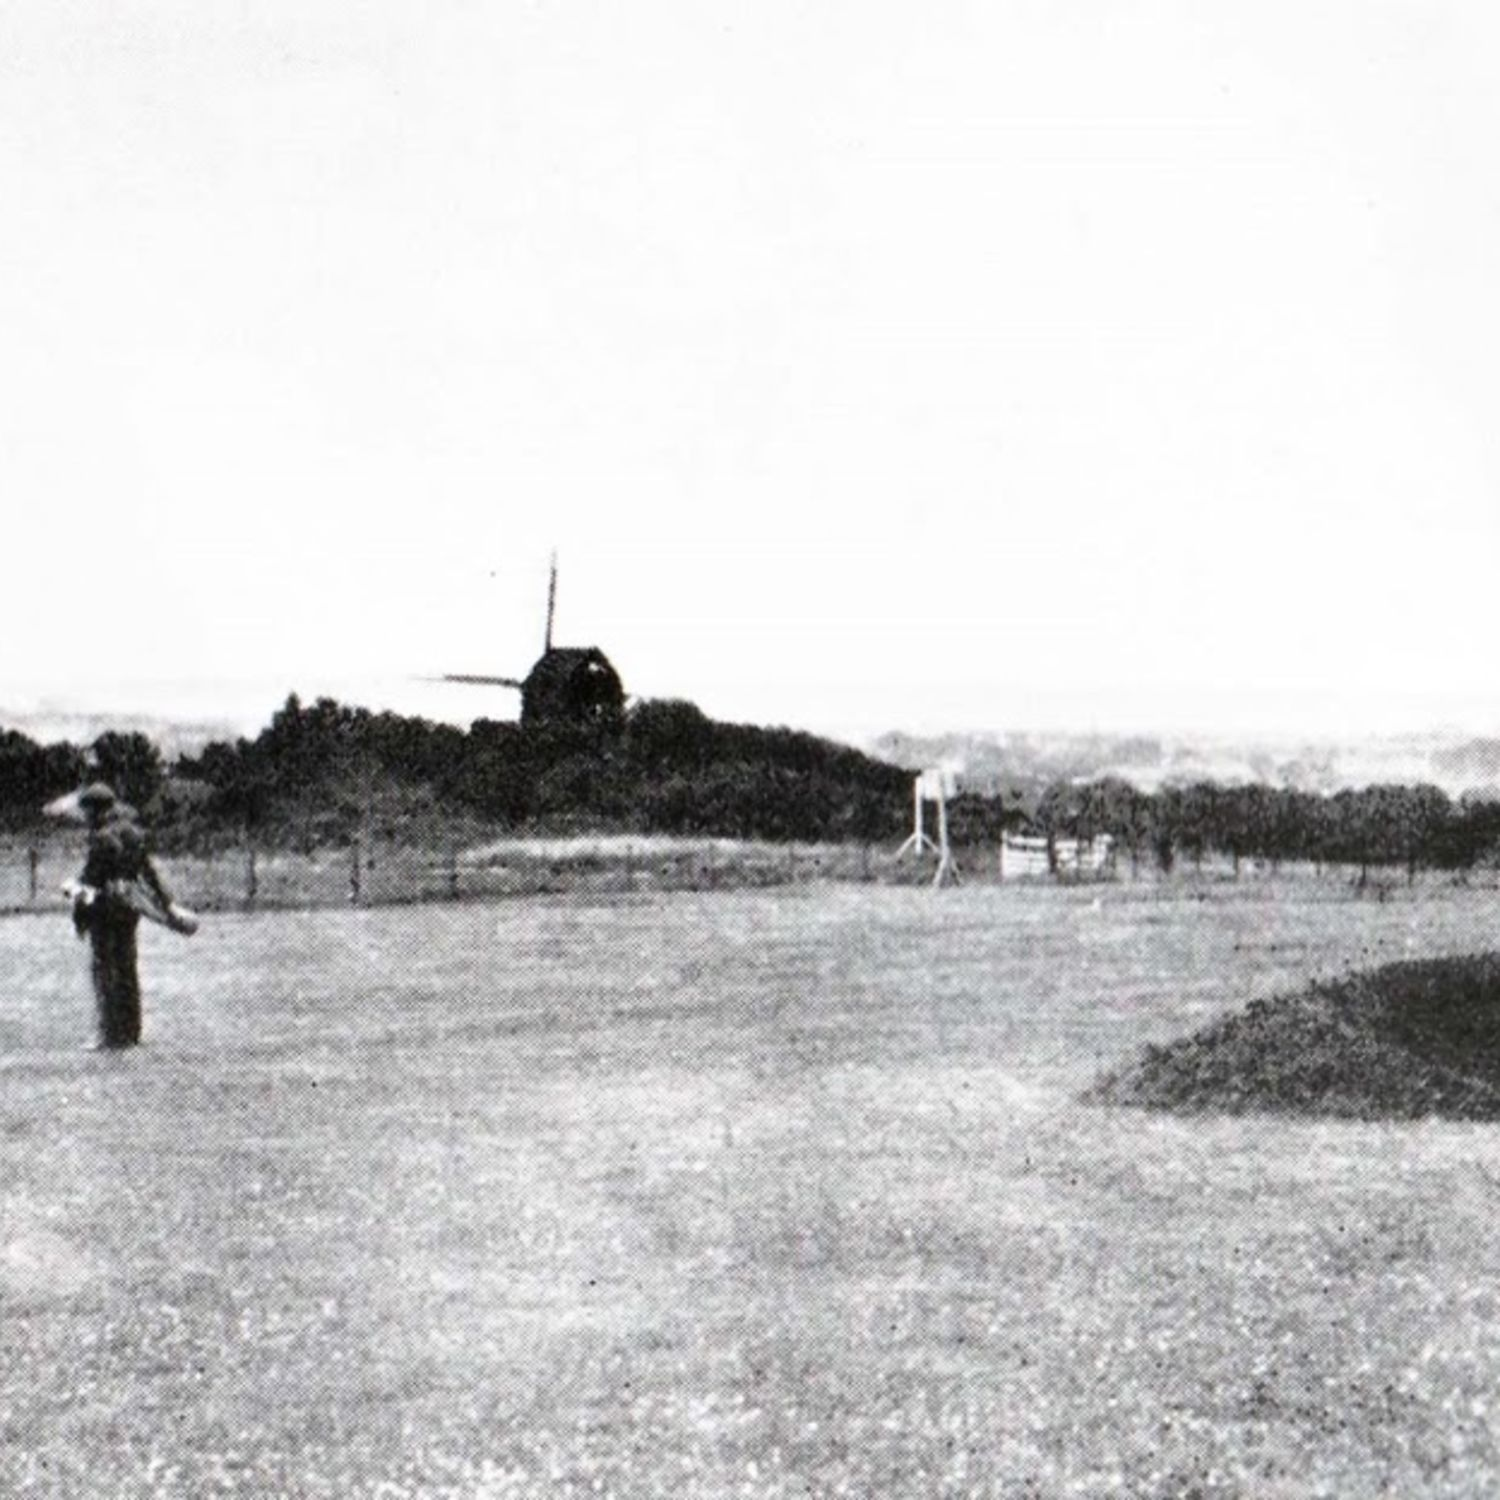 Today it would be the 16th green lower. The Broadwater Windmill can be seen in the background. c1909